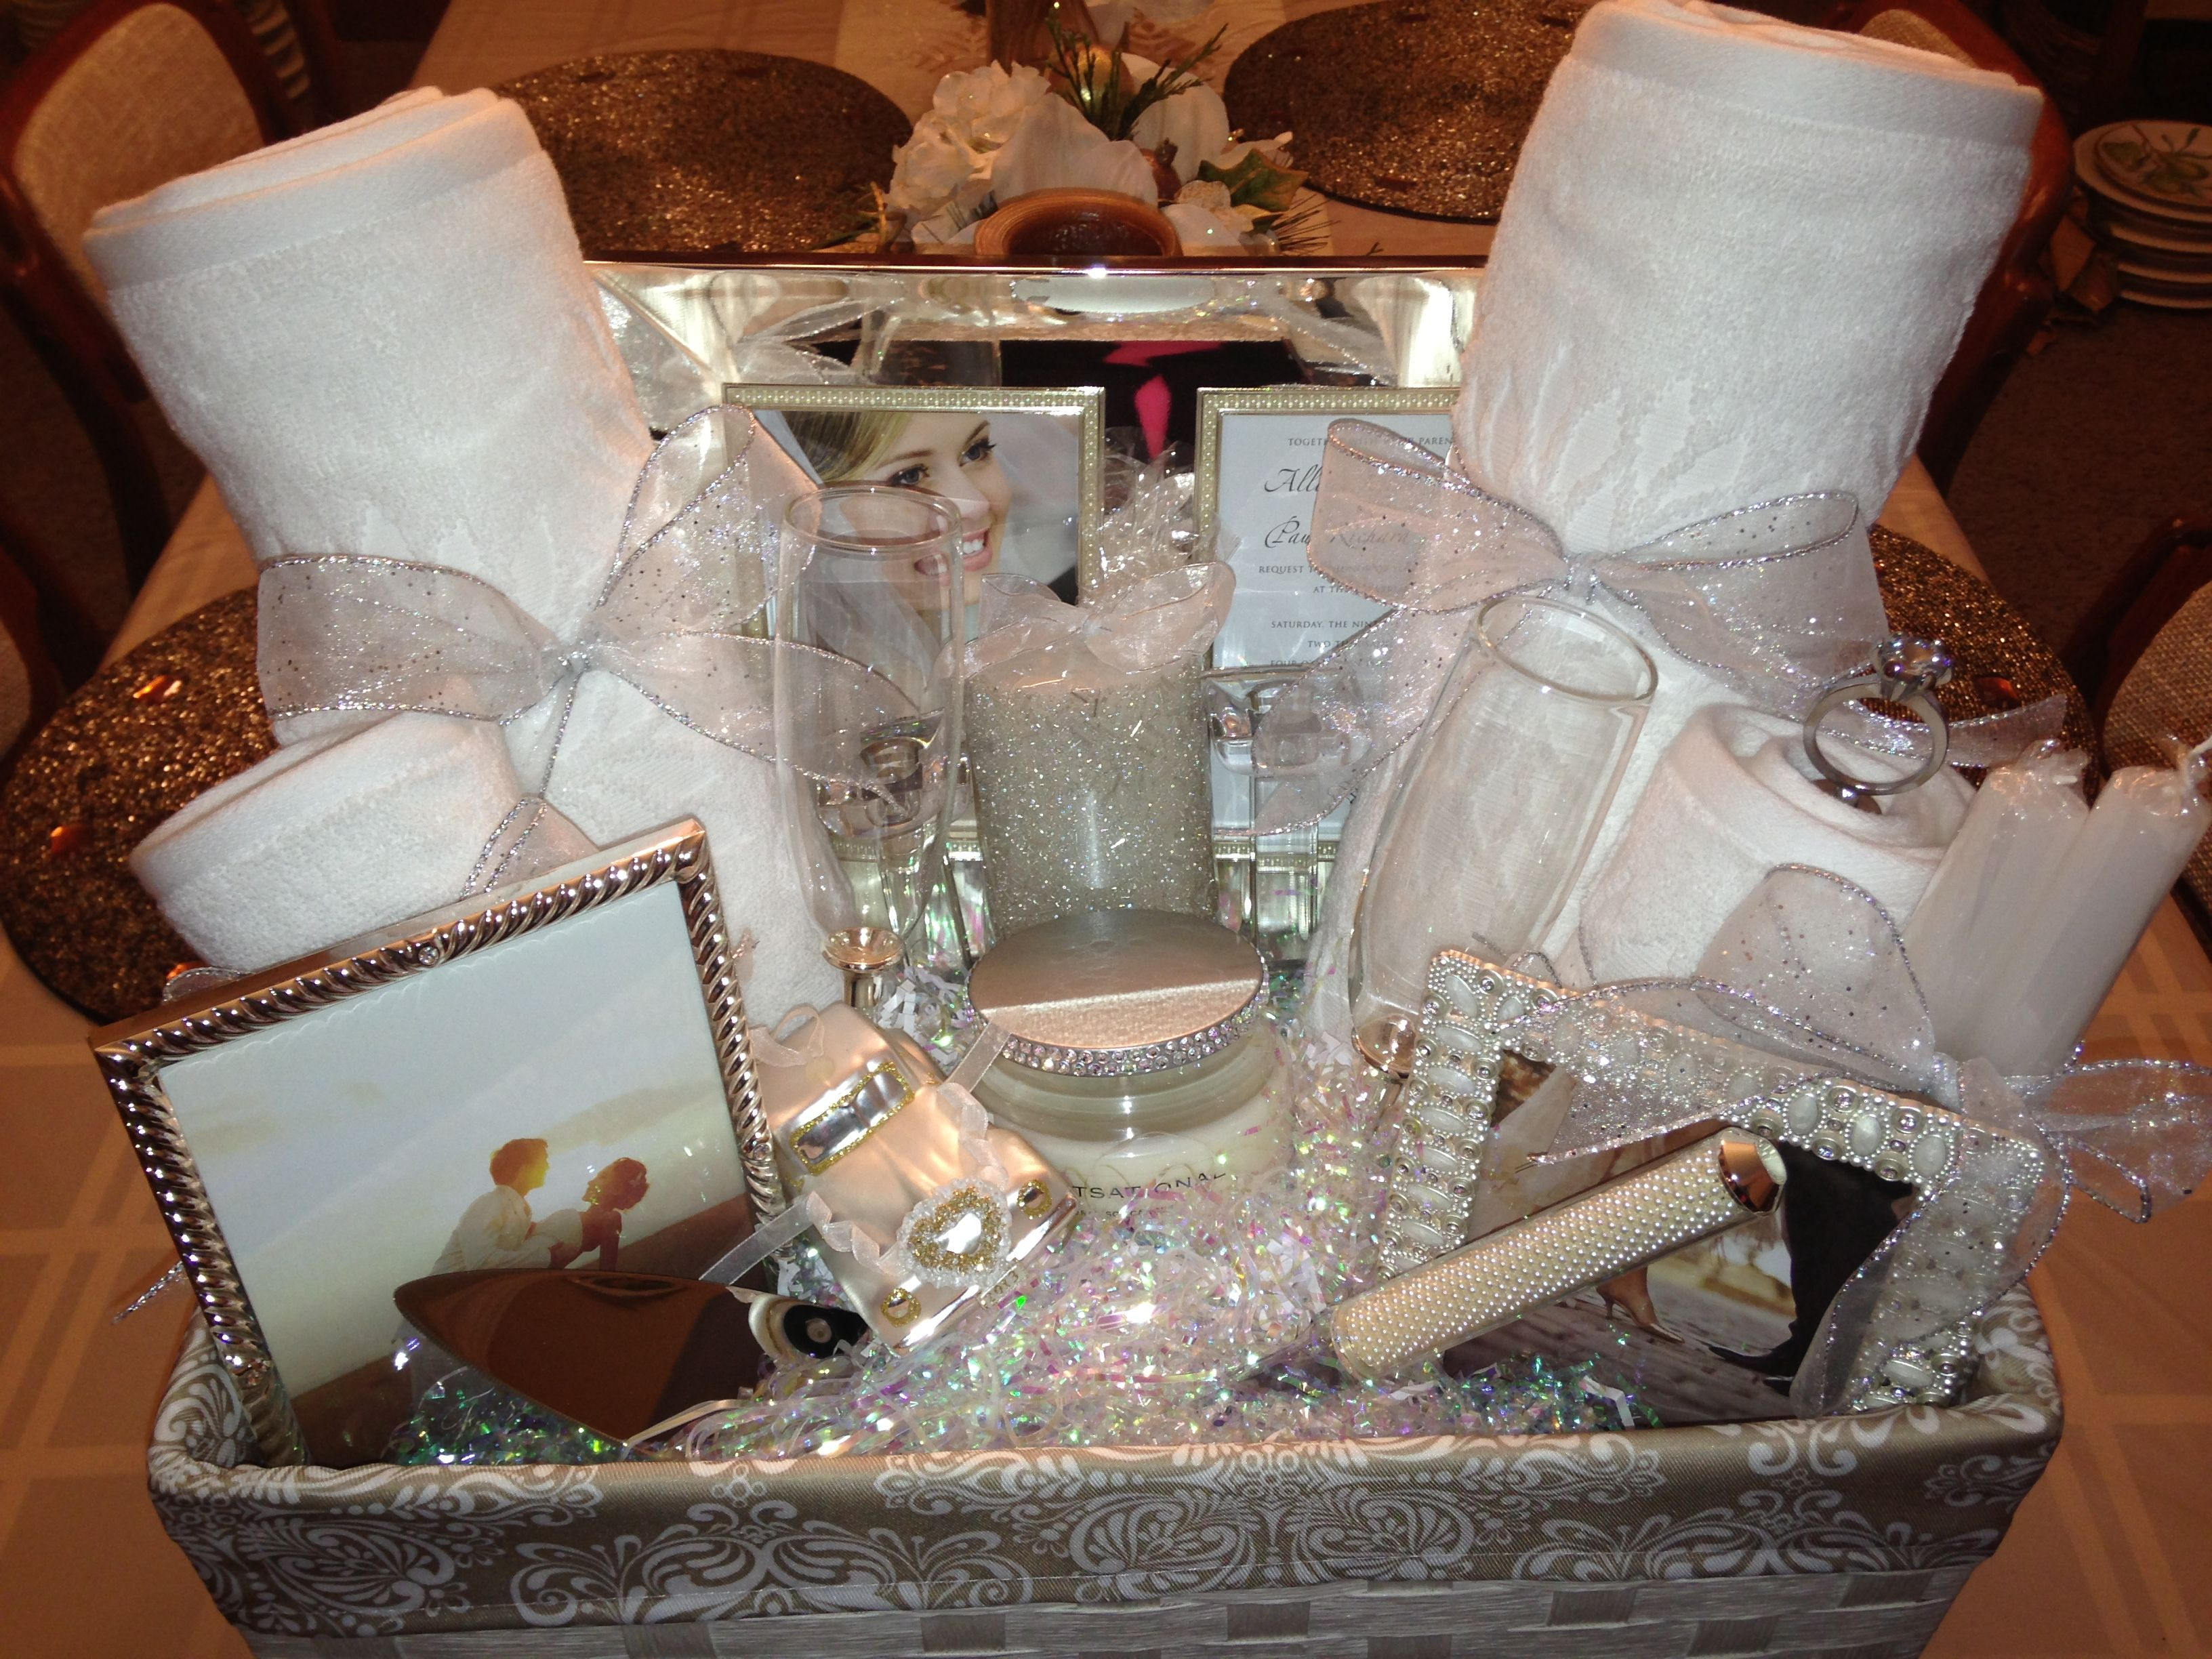 inside shower steps of throw how hosting to for news planning the note bridal take gifts weddings design perfect hilary